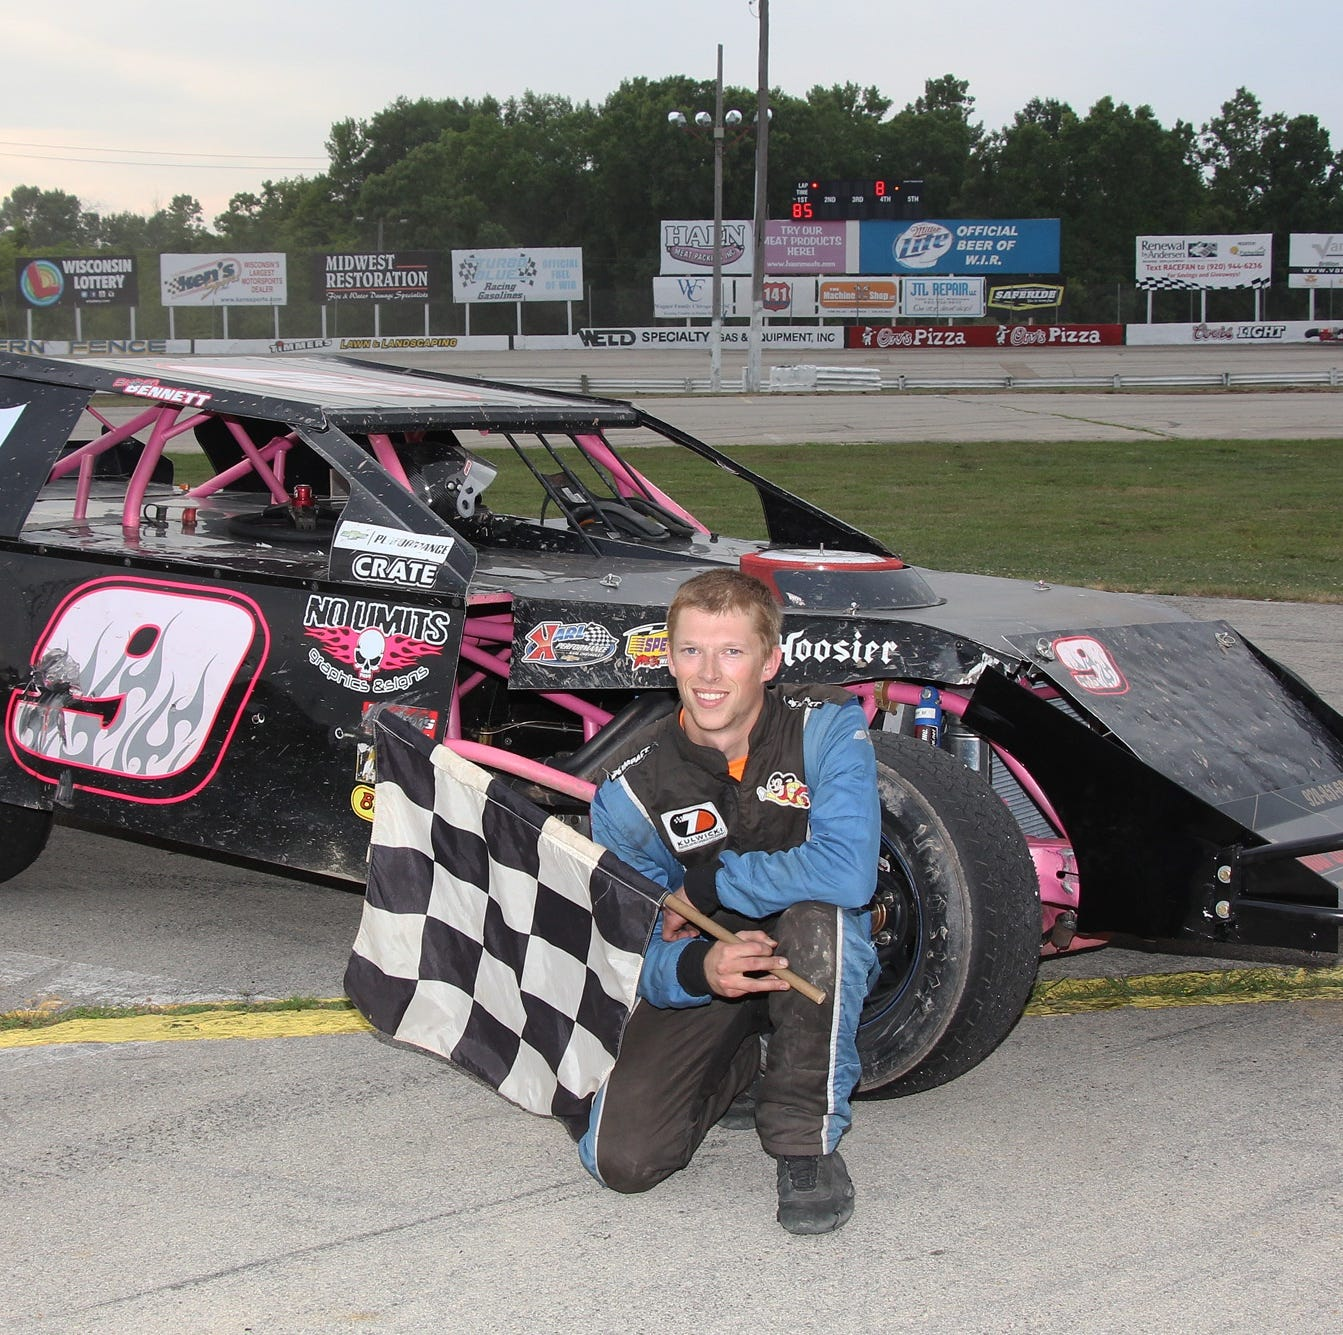 It's always time for racin' for Braison Bennett